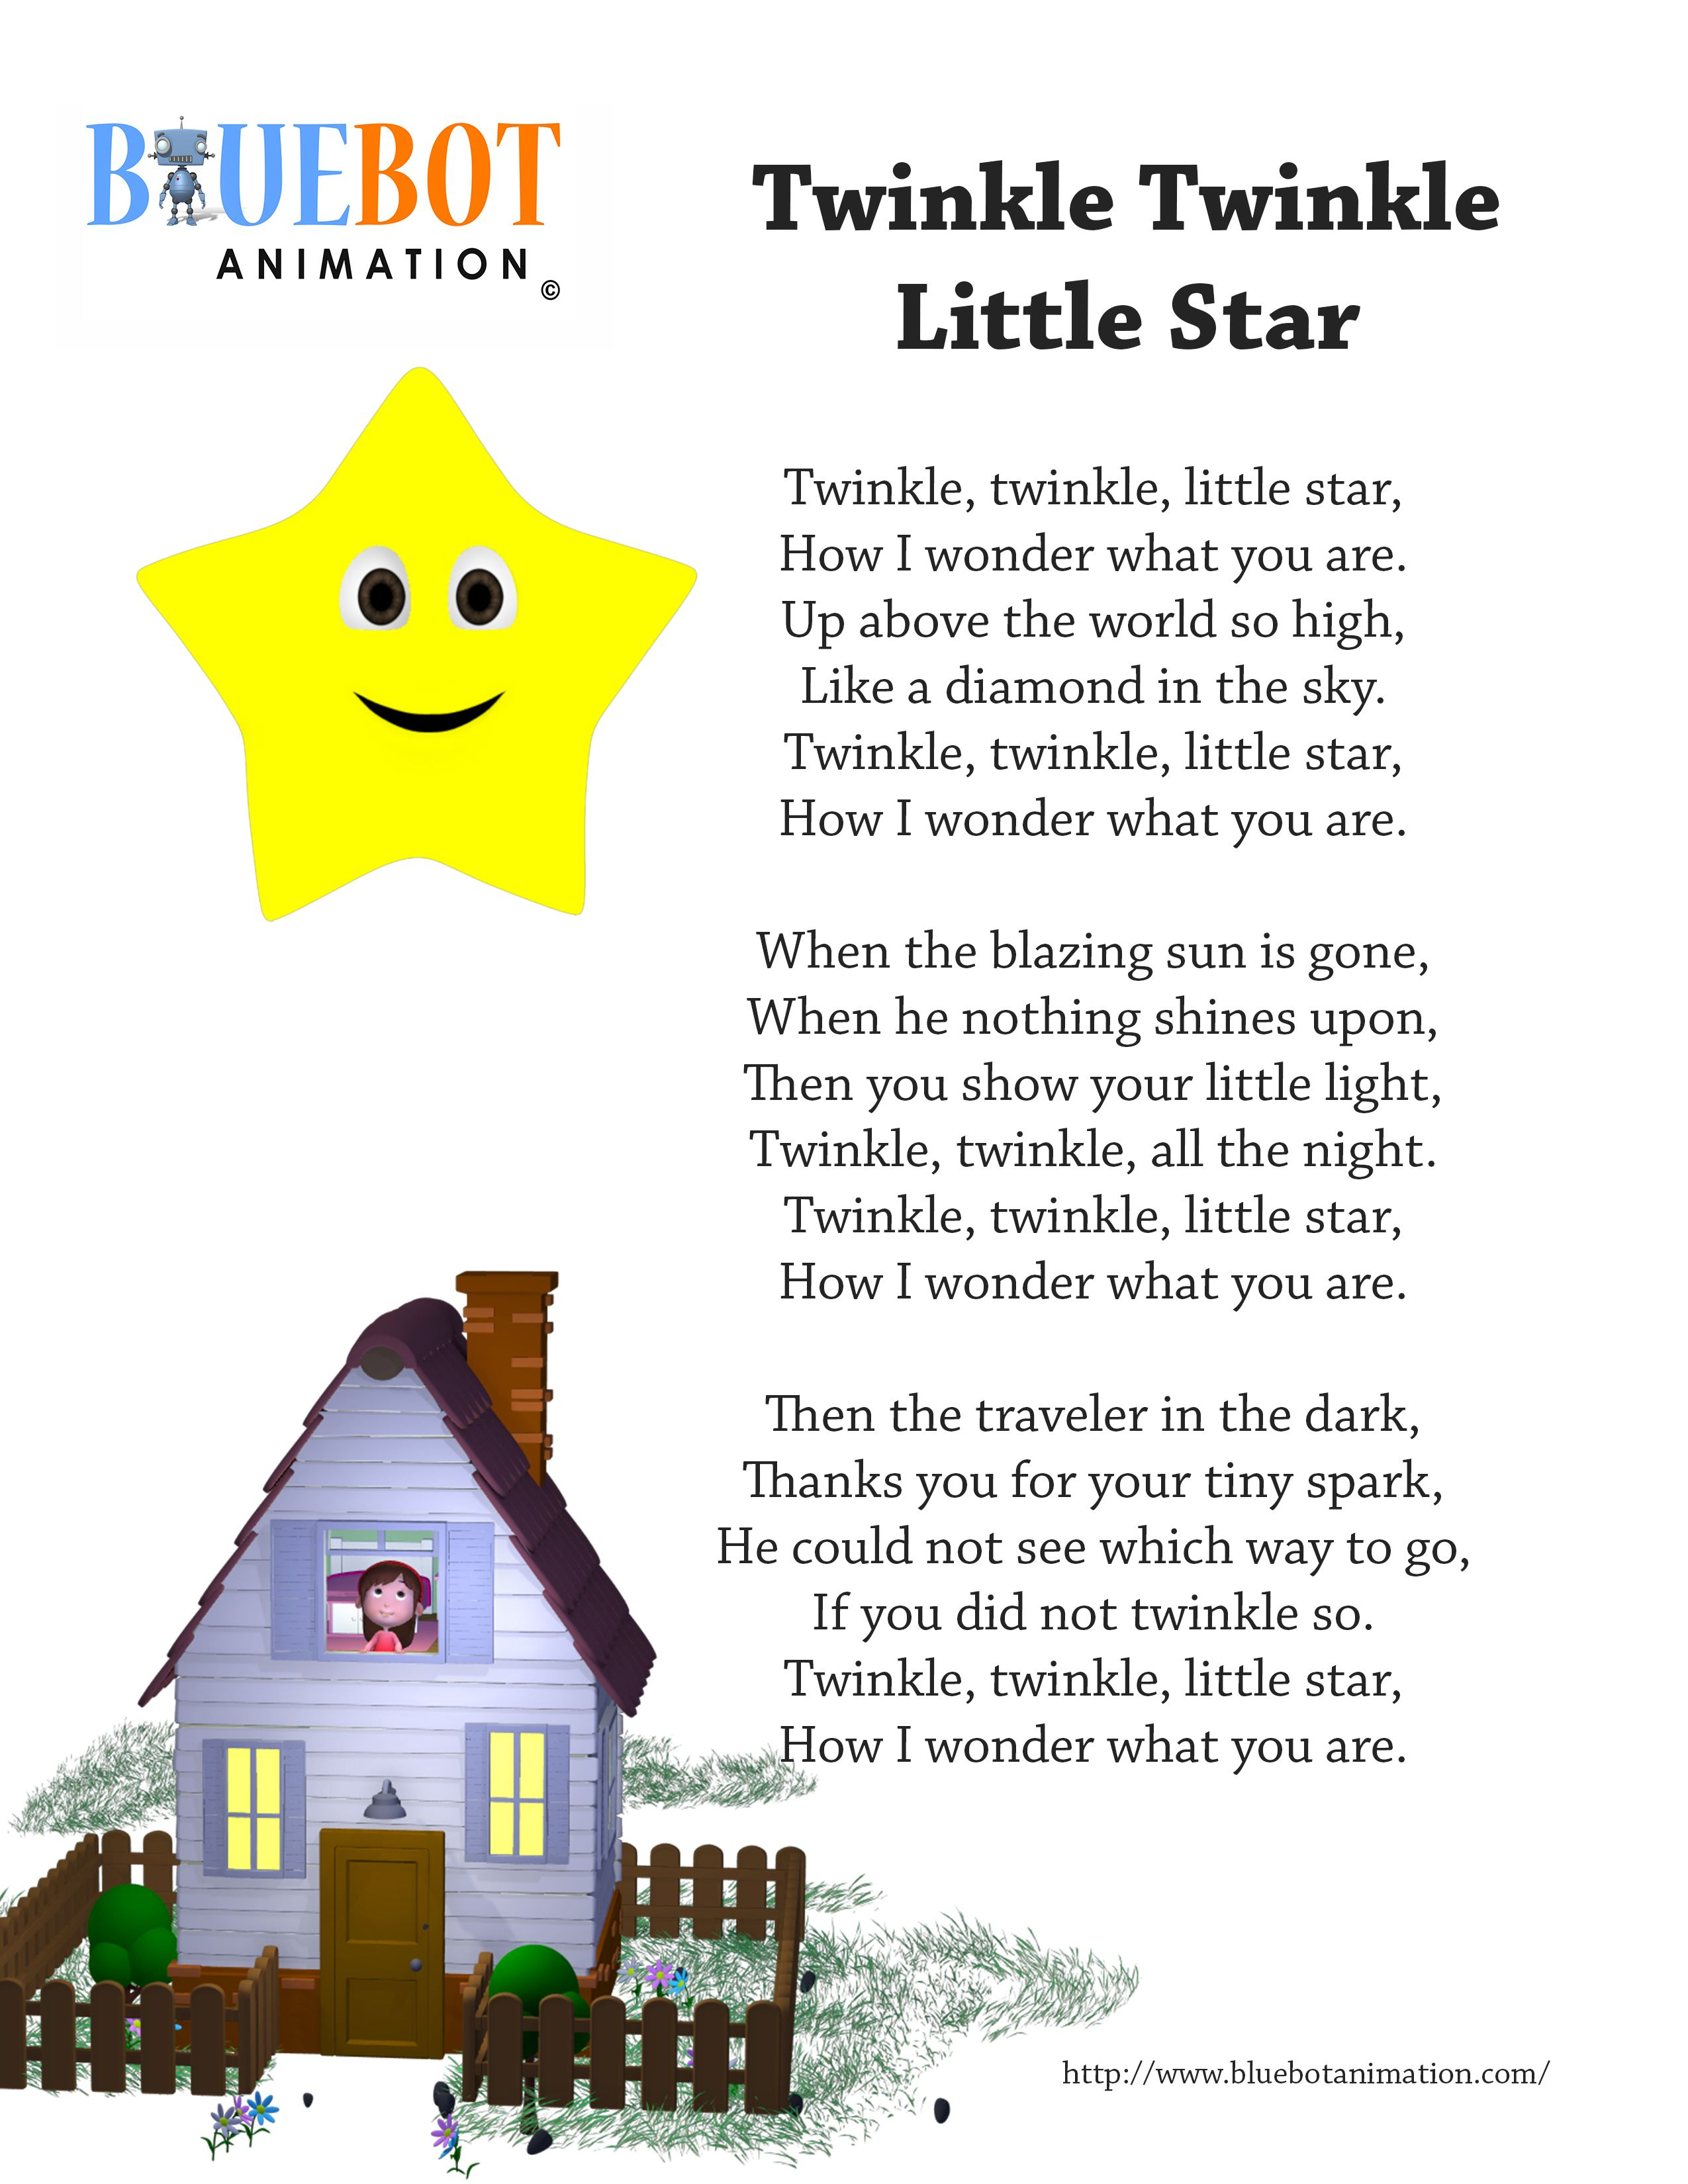 Twinkle Twinkle Little Star Nursery Rhyme Lyrics Free Printable - Free Printable Nursery Rhymes Songs